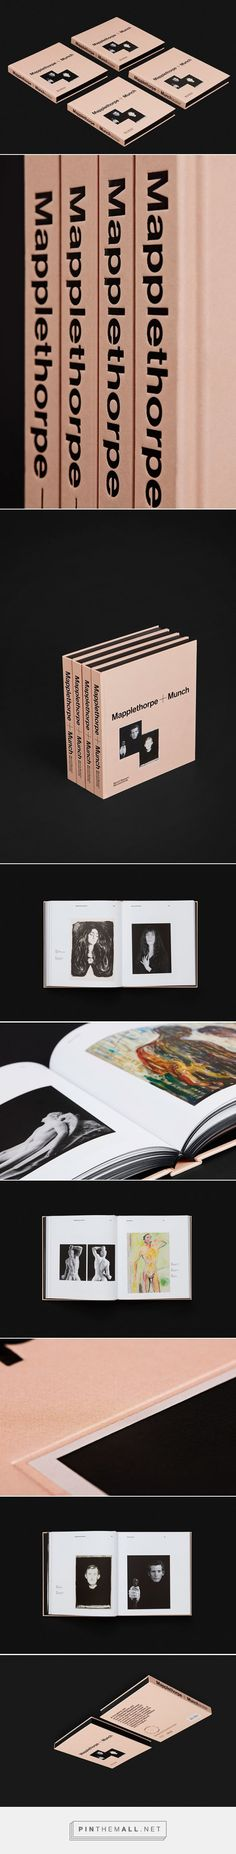 It's Nice That | A flesh-pink catalogue designed by Snøhetta for Mapplethorpe+Munch exhibition in Oslo... - a grouped images picture - Pin Them All